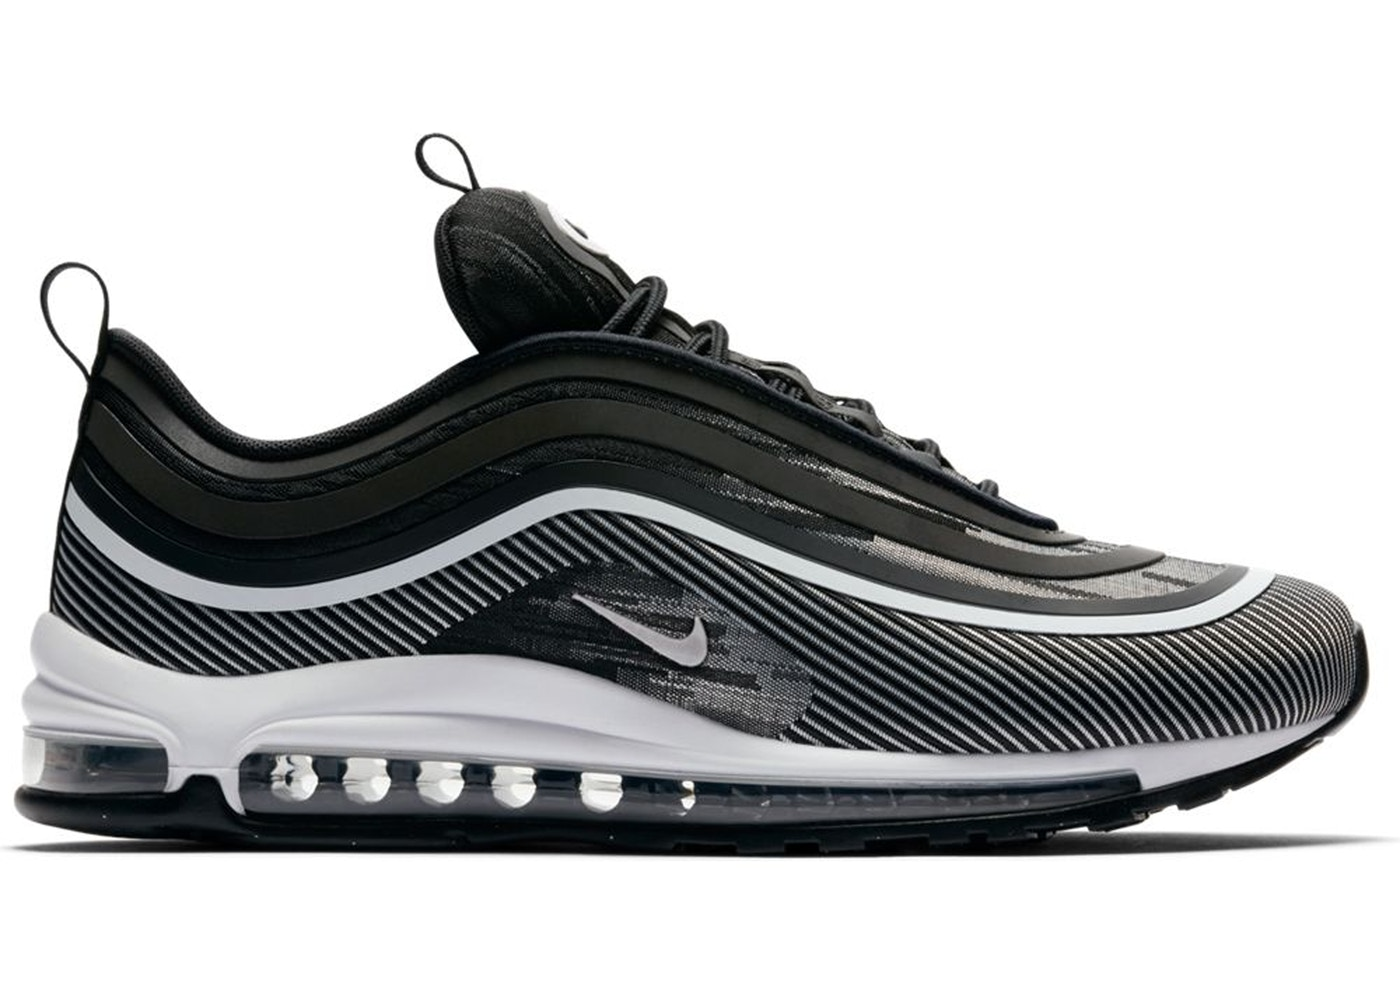 f87658d168c Air Max 97 Ultra 17 Black White - 918356-006